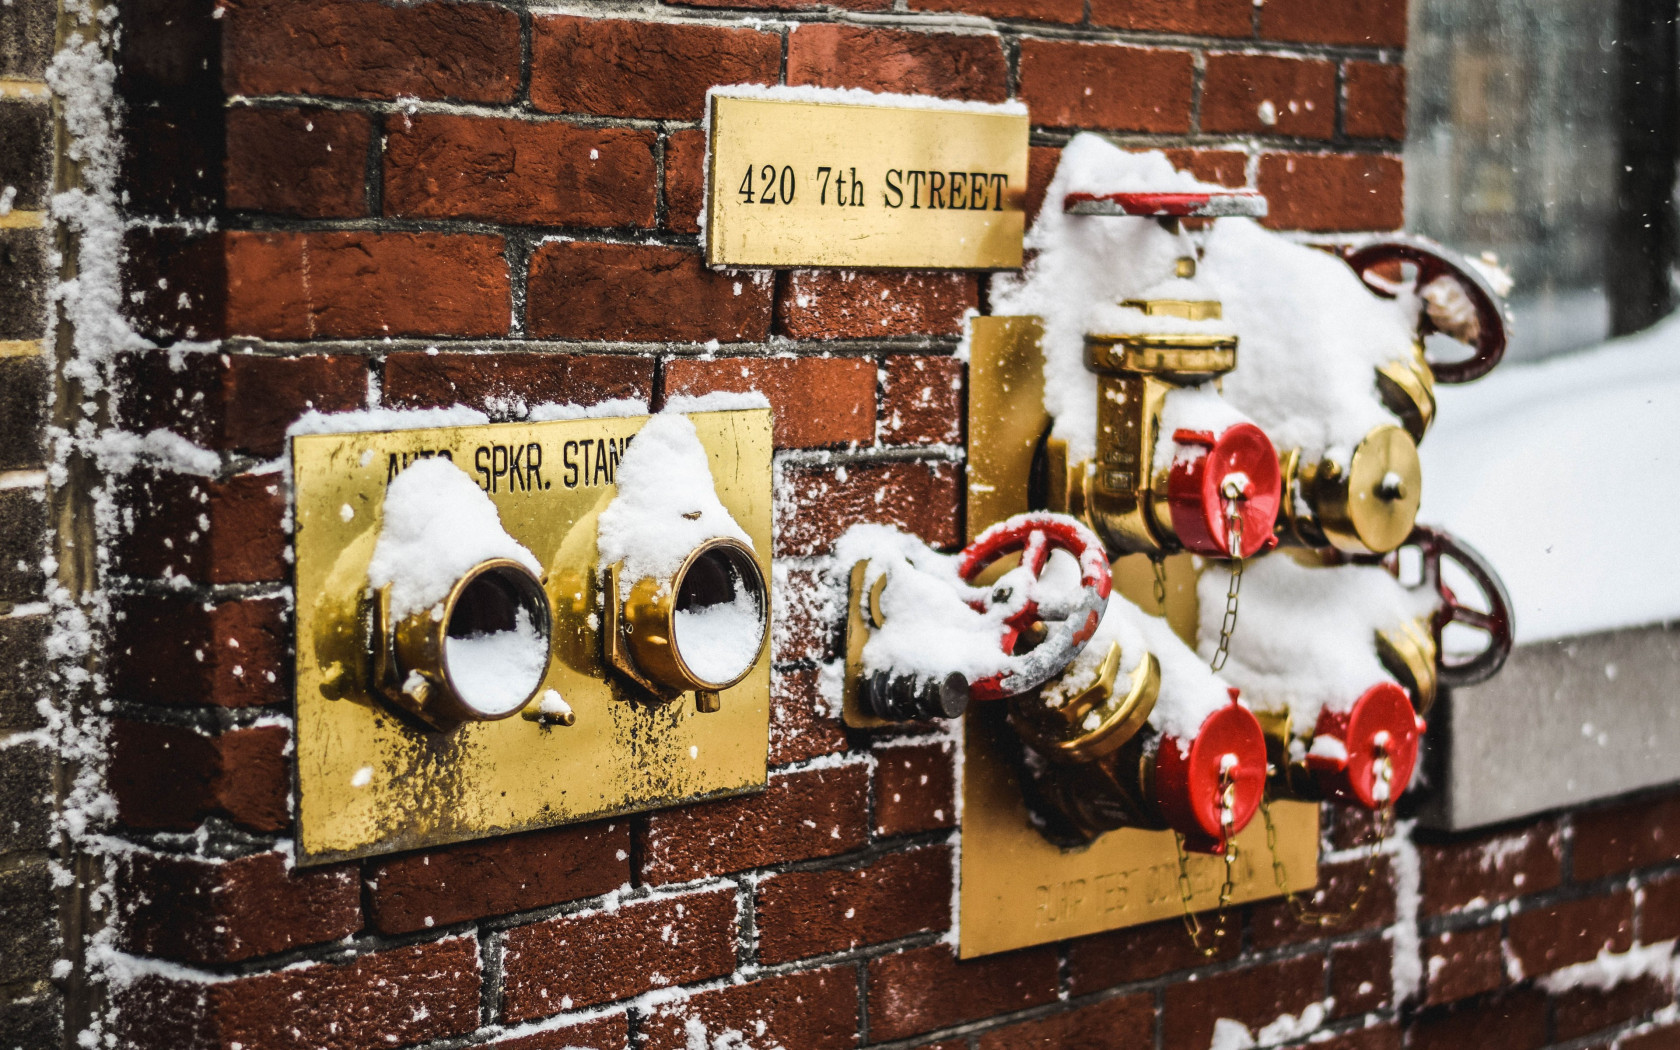 Snow covered fire standpipes in Washington | 1680x1050 wallpaper